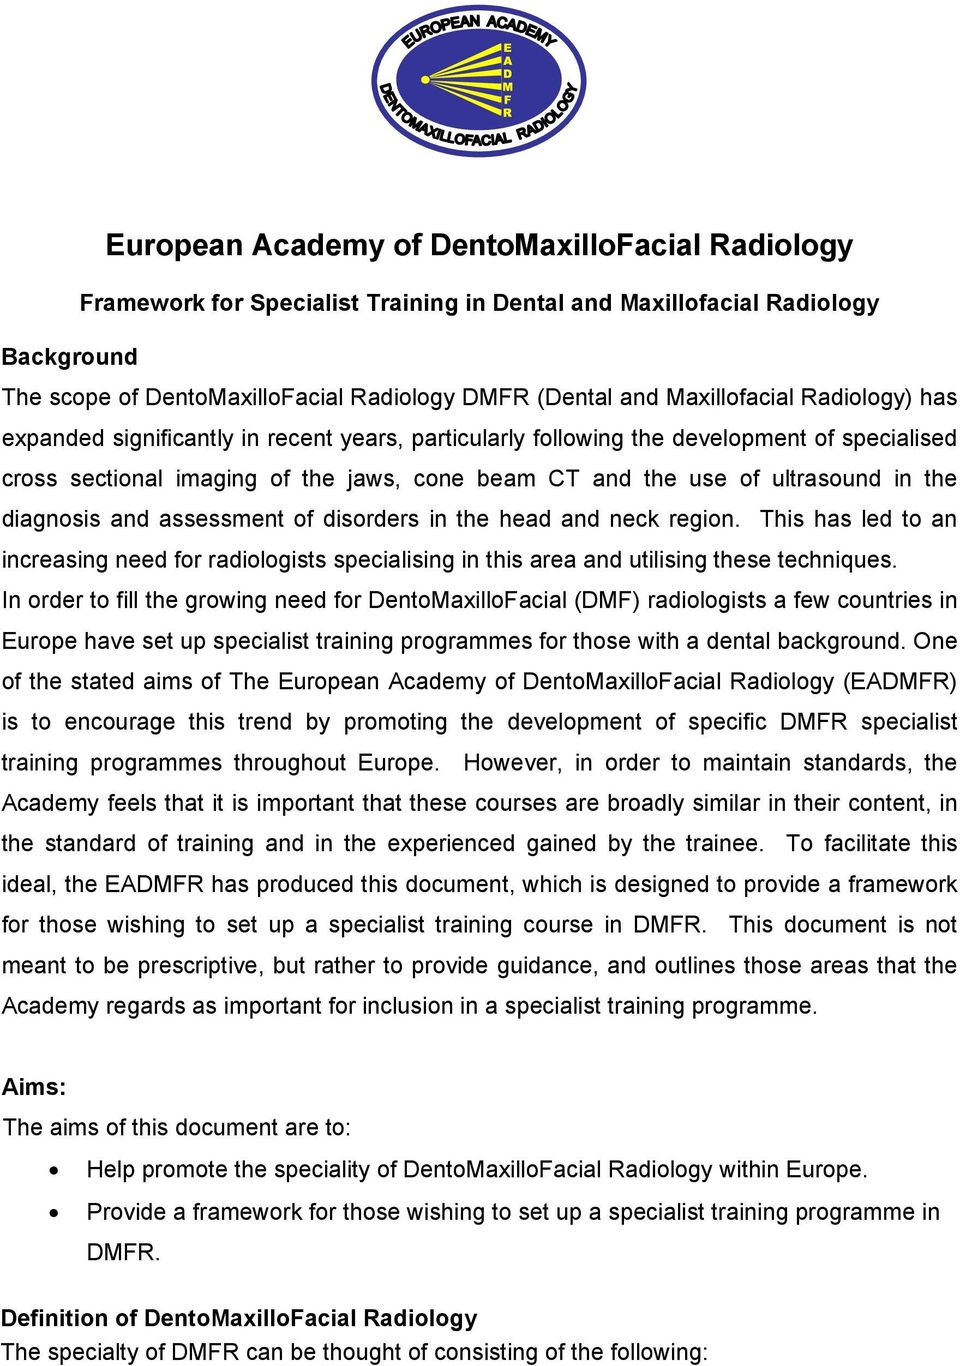 in the diagnosis and assessment of disorders in the head and neck region. This has led to an increasing need for radiologists specialising in this area and utilising these techniques.